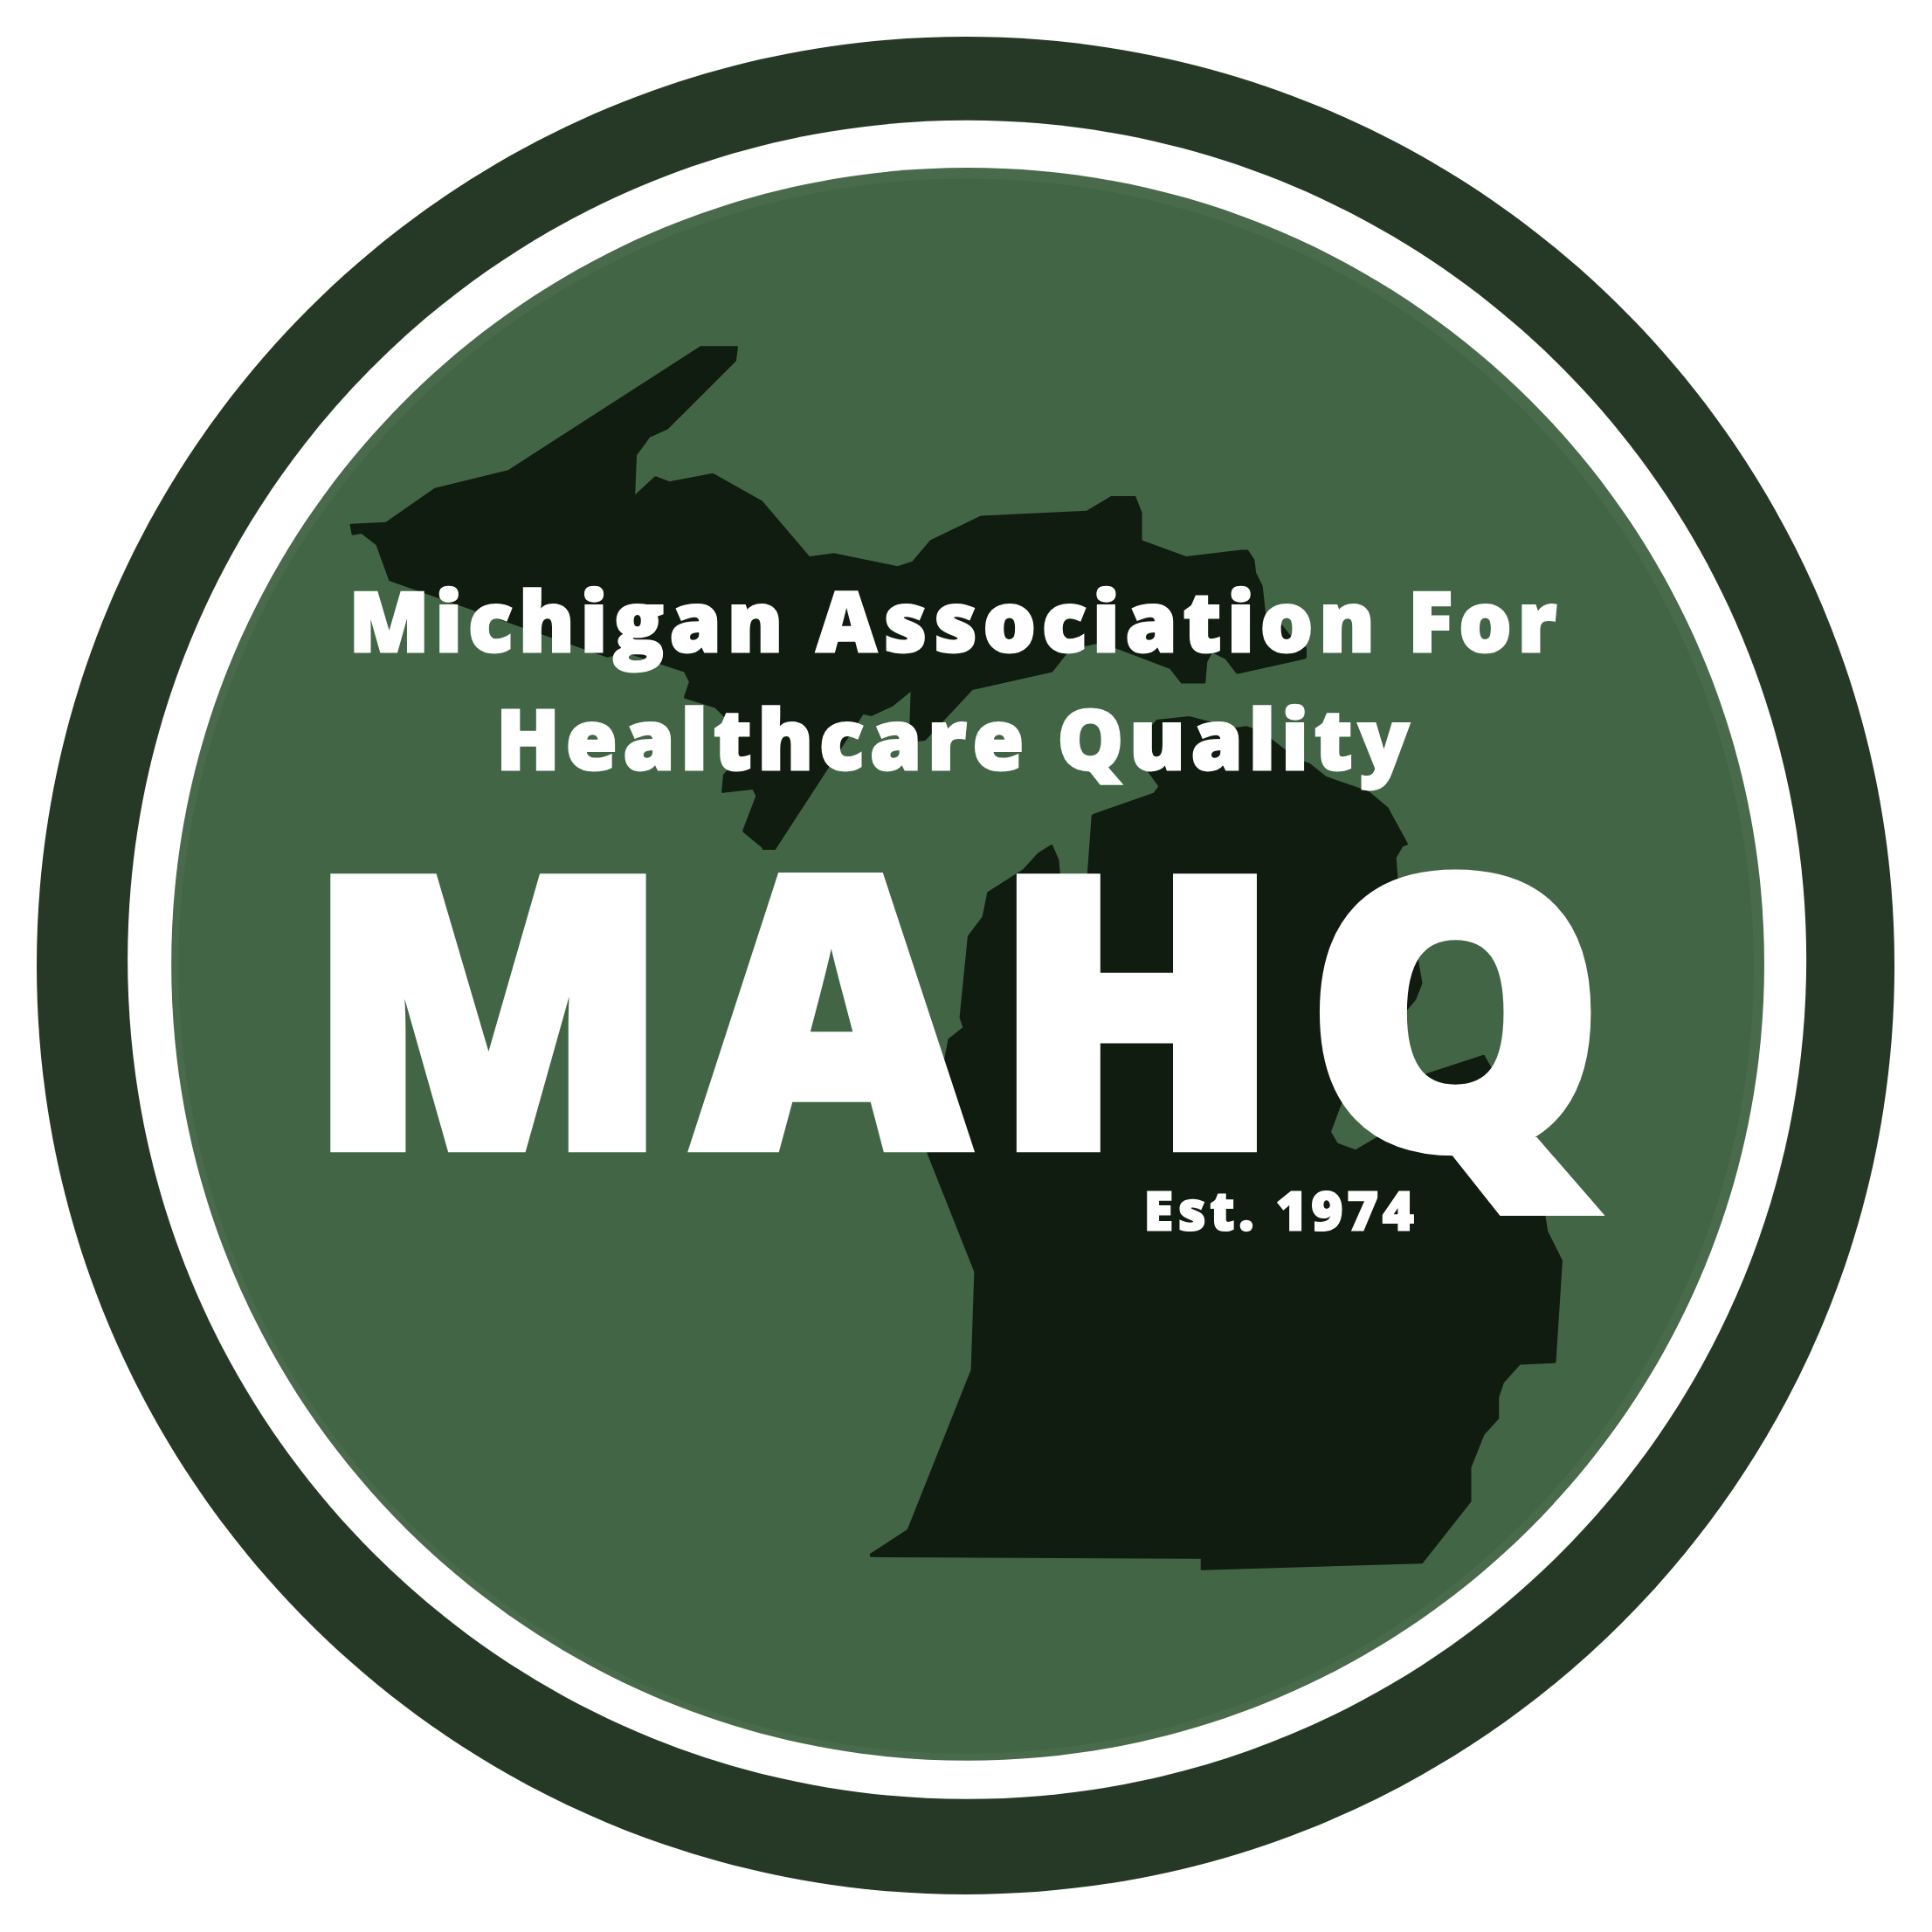 Michigan Association for Healthcare Quality